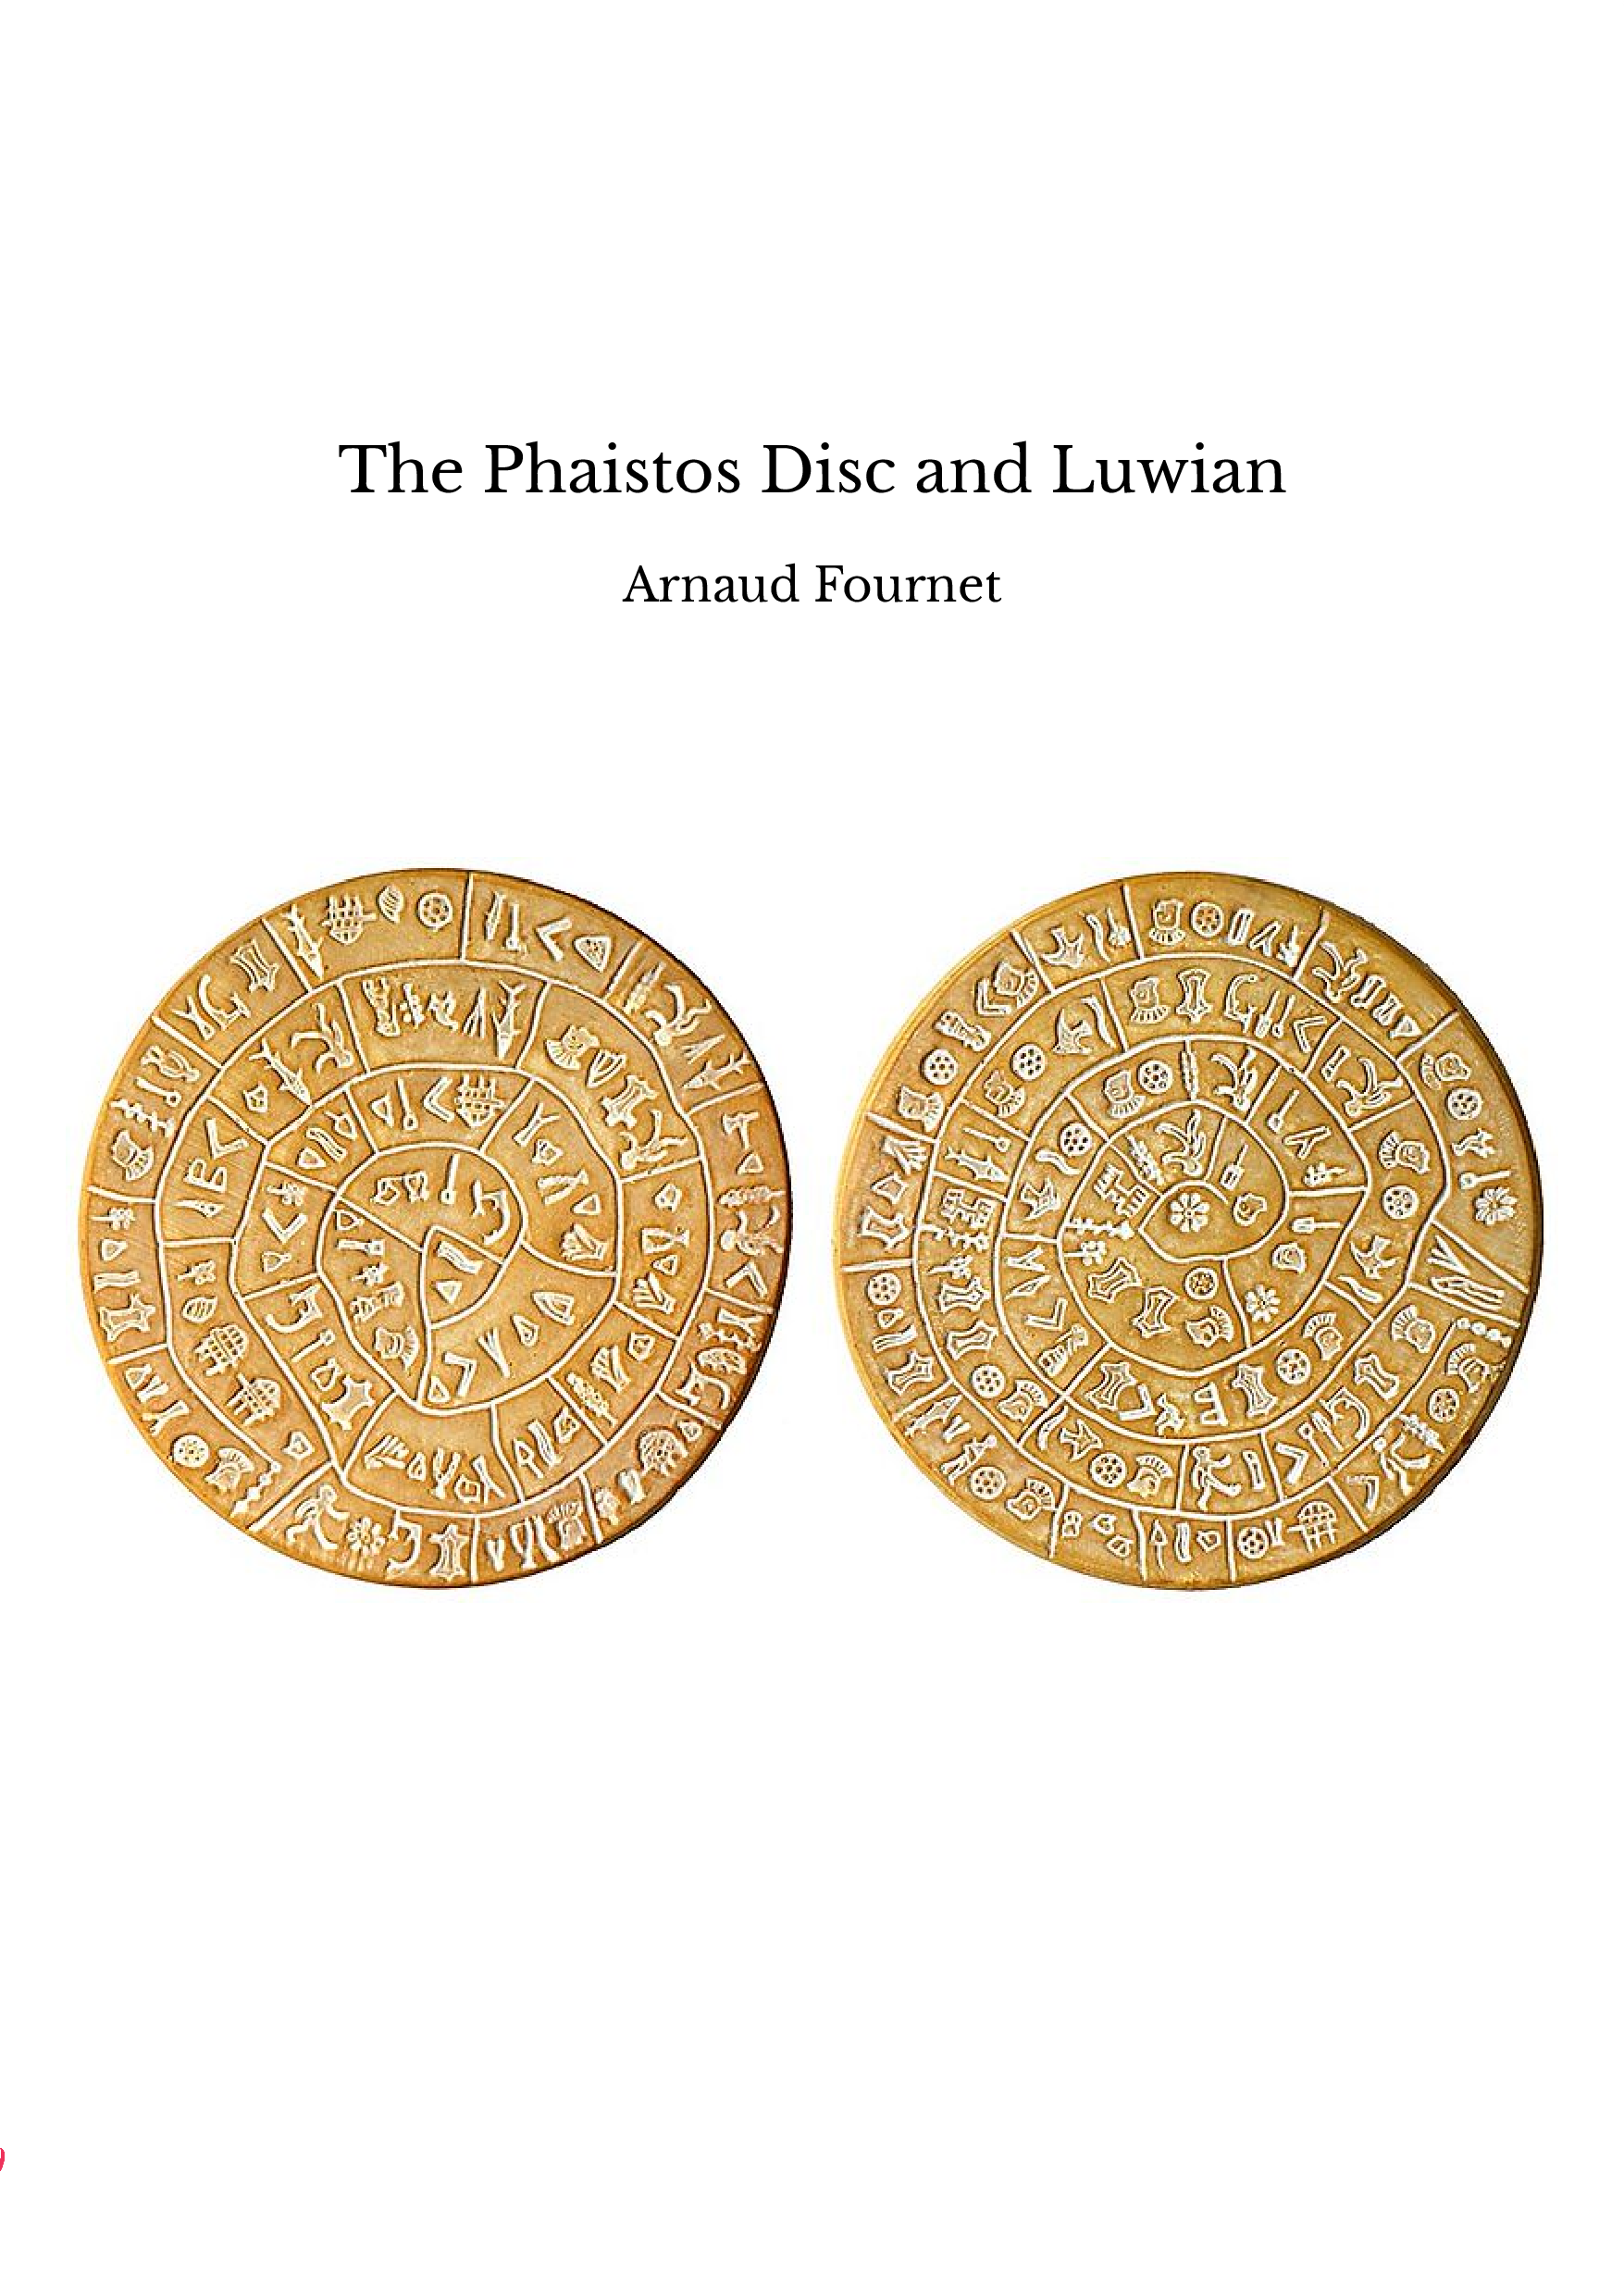 The Phaistos Disc and Luwian